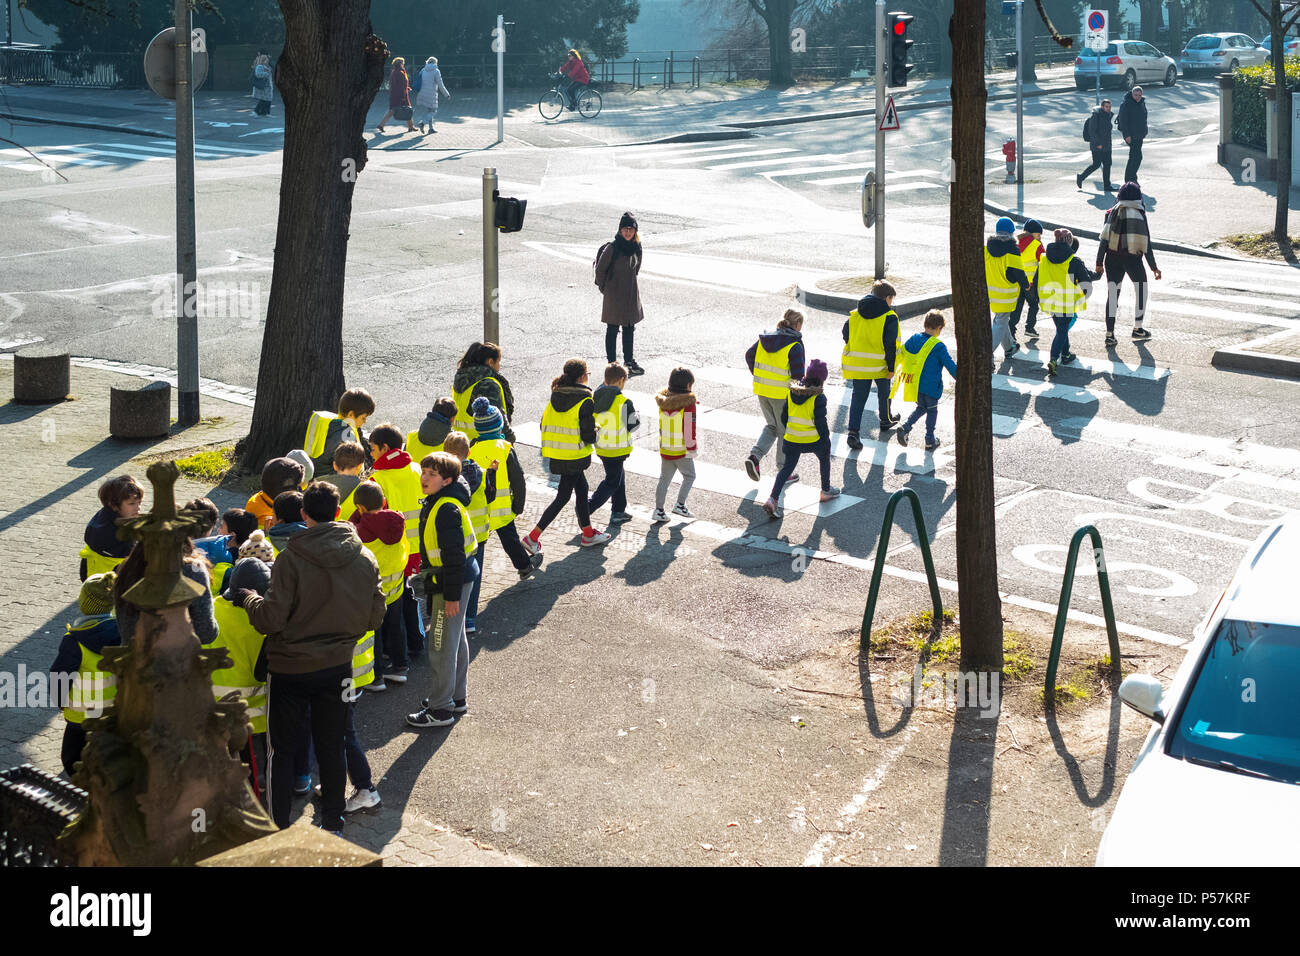 Strasbourg, young schoolchildren wearing yellow hi-vis jackets crossing street on pedestrian crossing, Alsace, France, Europe, Stock Photo